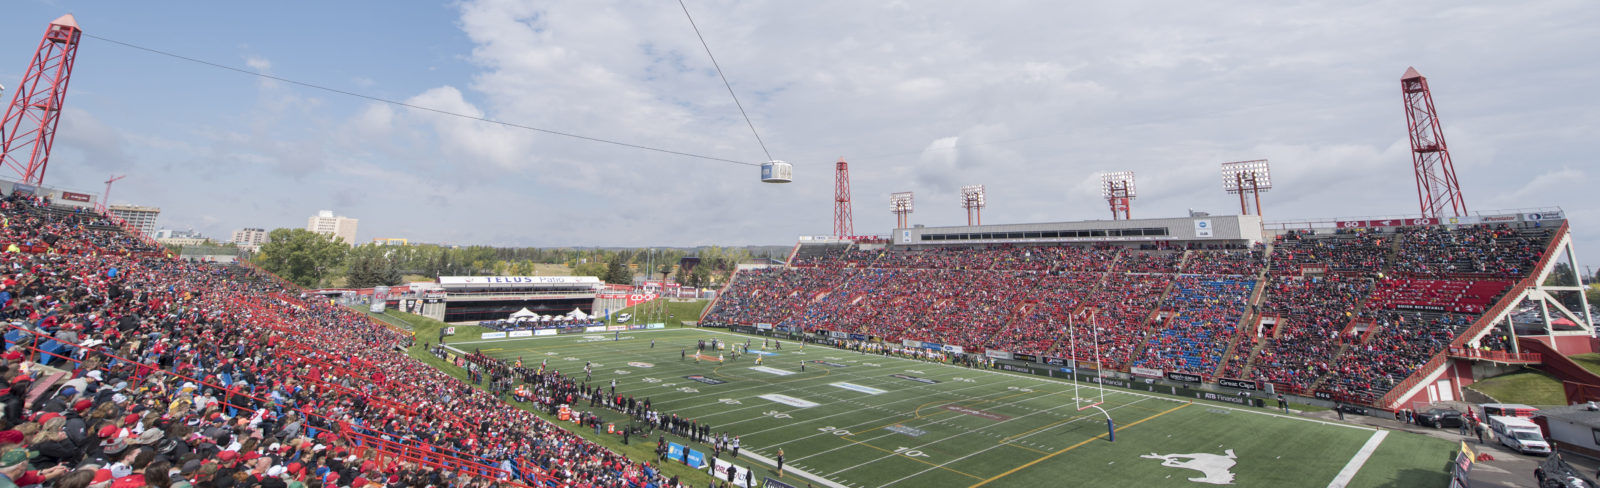 GAME LIKE A PRO: LABOUR DAY EDITION - Calgary Stampeders